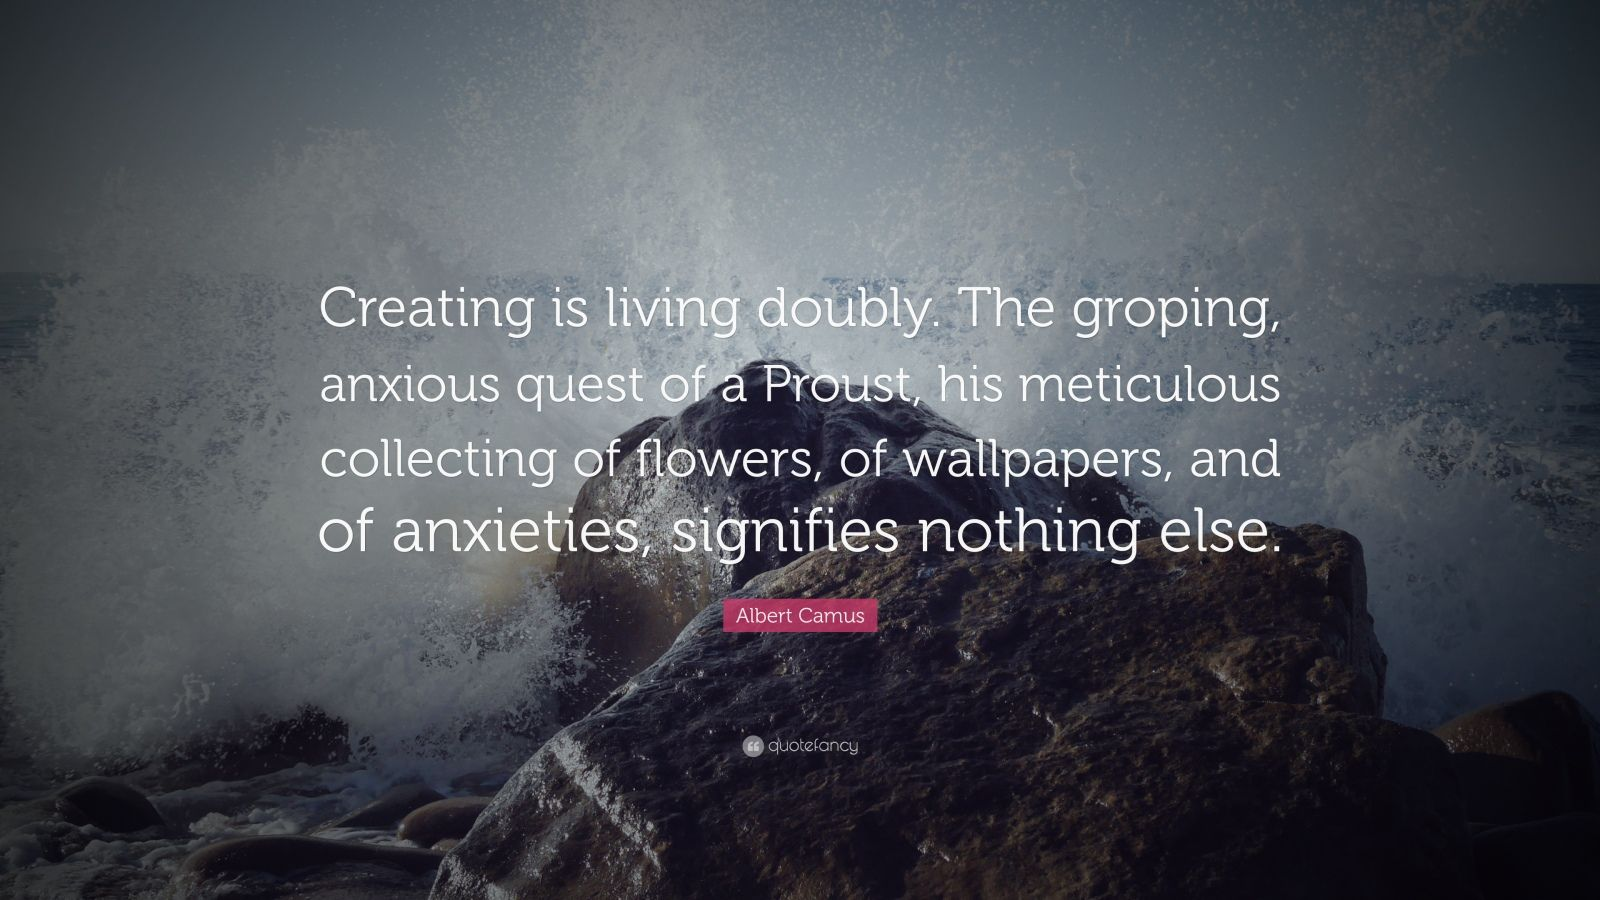 """Albert Camus Quote: """"Creating is living doubly. The groping, anxious quest of a Proust, his meticulous collecting of flowers, of wallpapers, and of anxieties, signifies nothing else."""""""